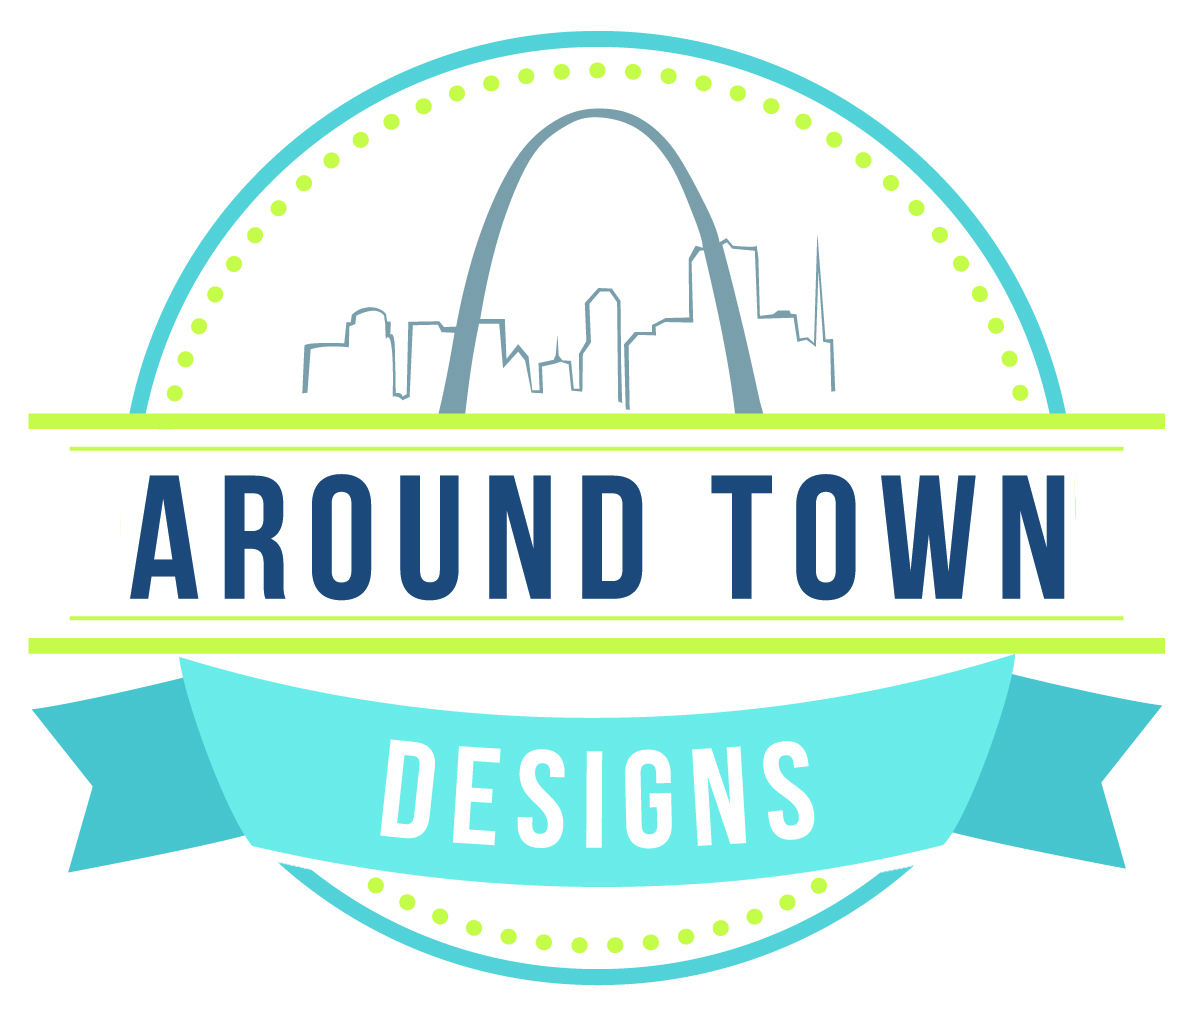 Around Town Designs